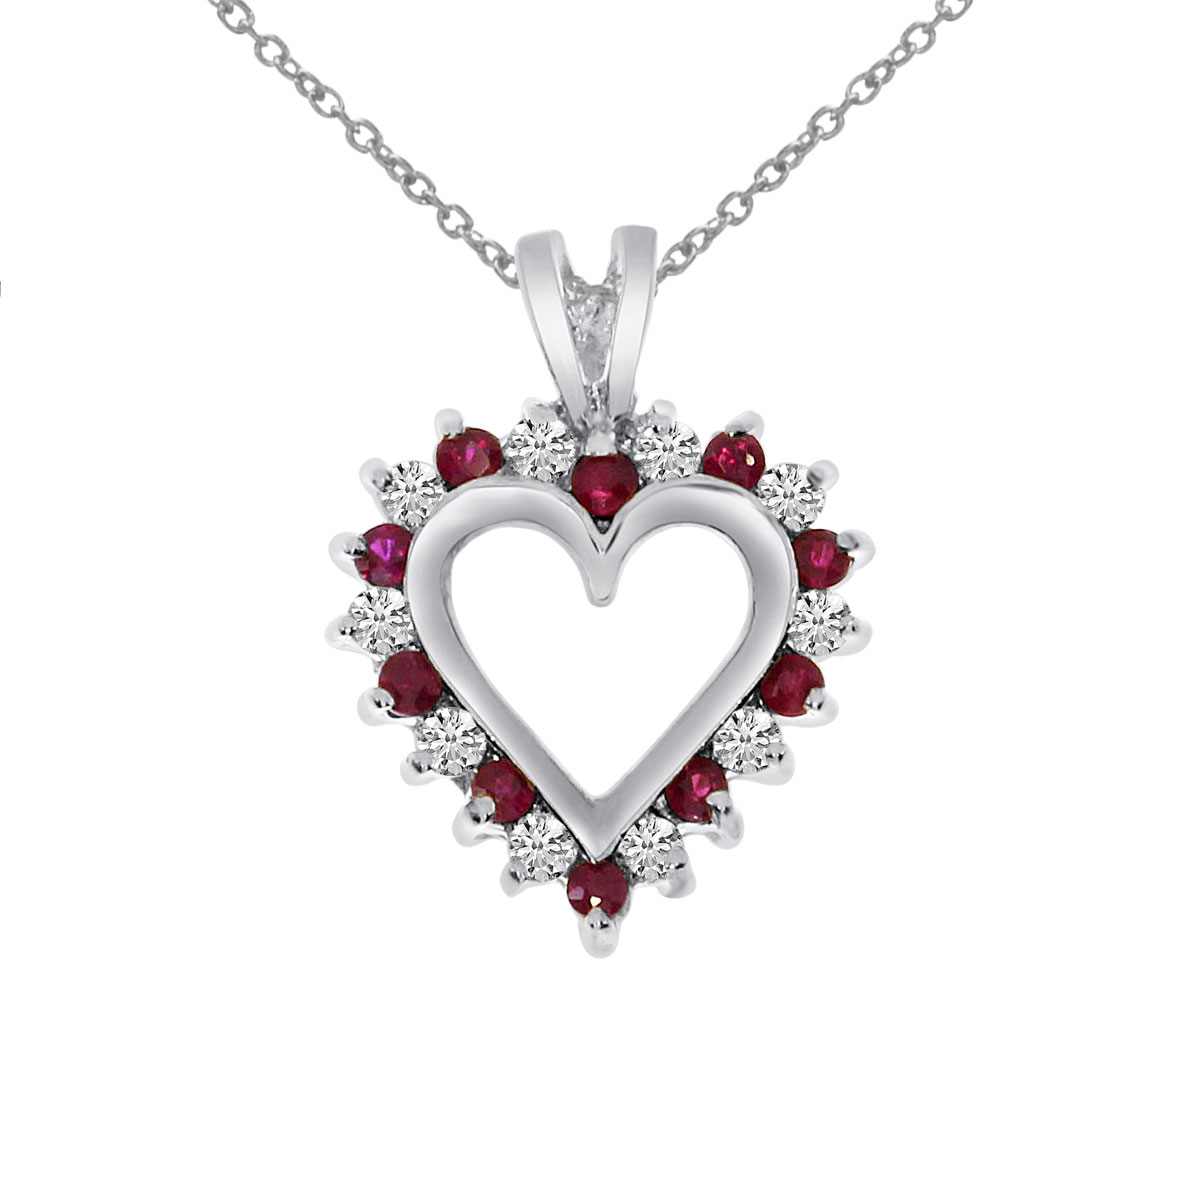 28cad4117 Details about 14k White Gold Ruby and Diamond Heart Shaped Pendant with 18